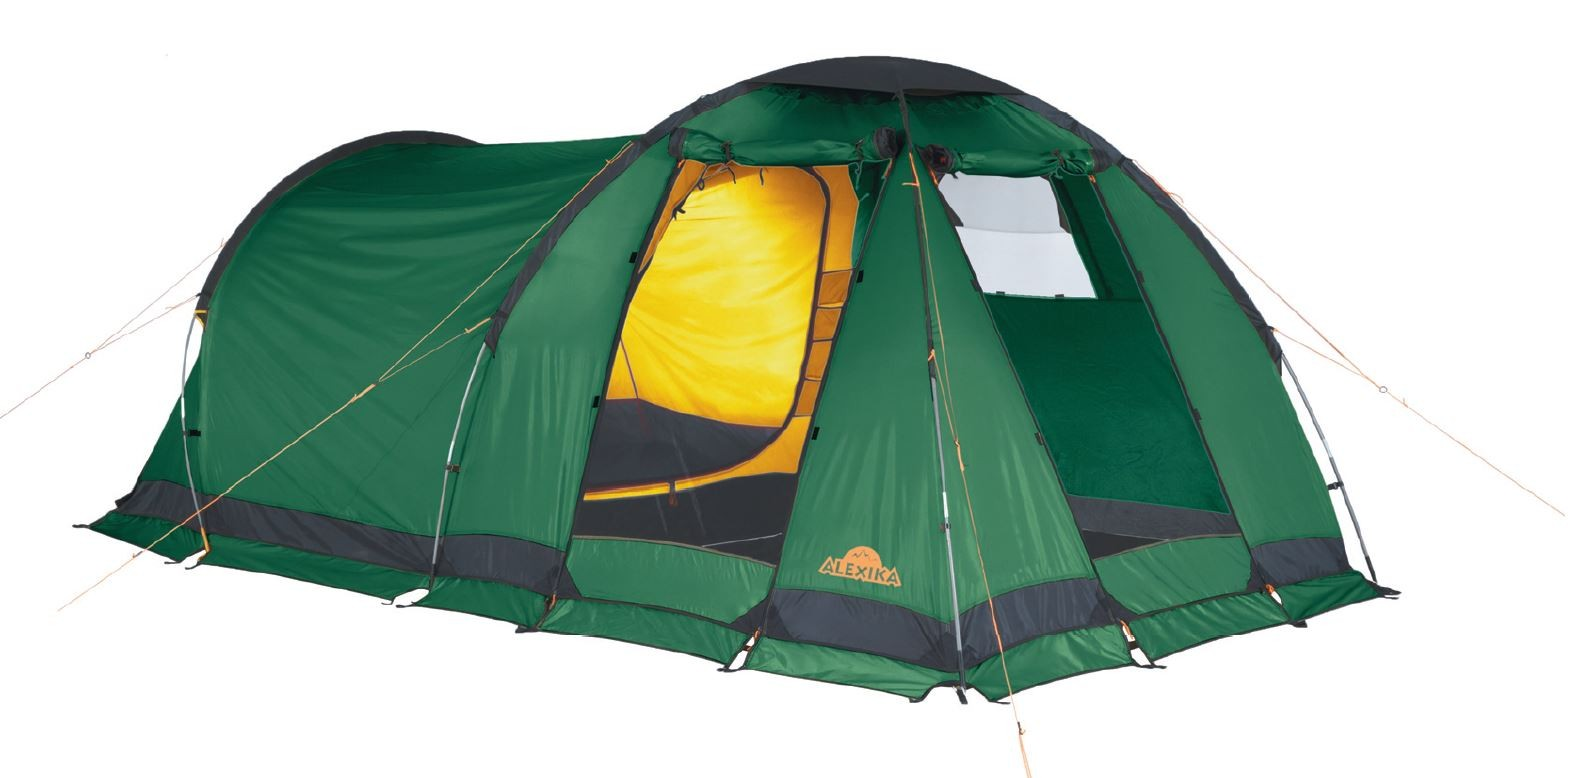 Family Tent, Tent, Camping Alexika Der Outdoor Shop